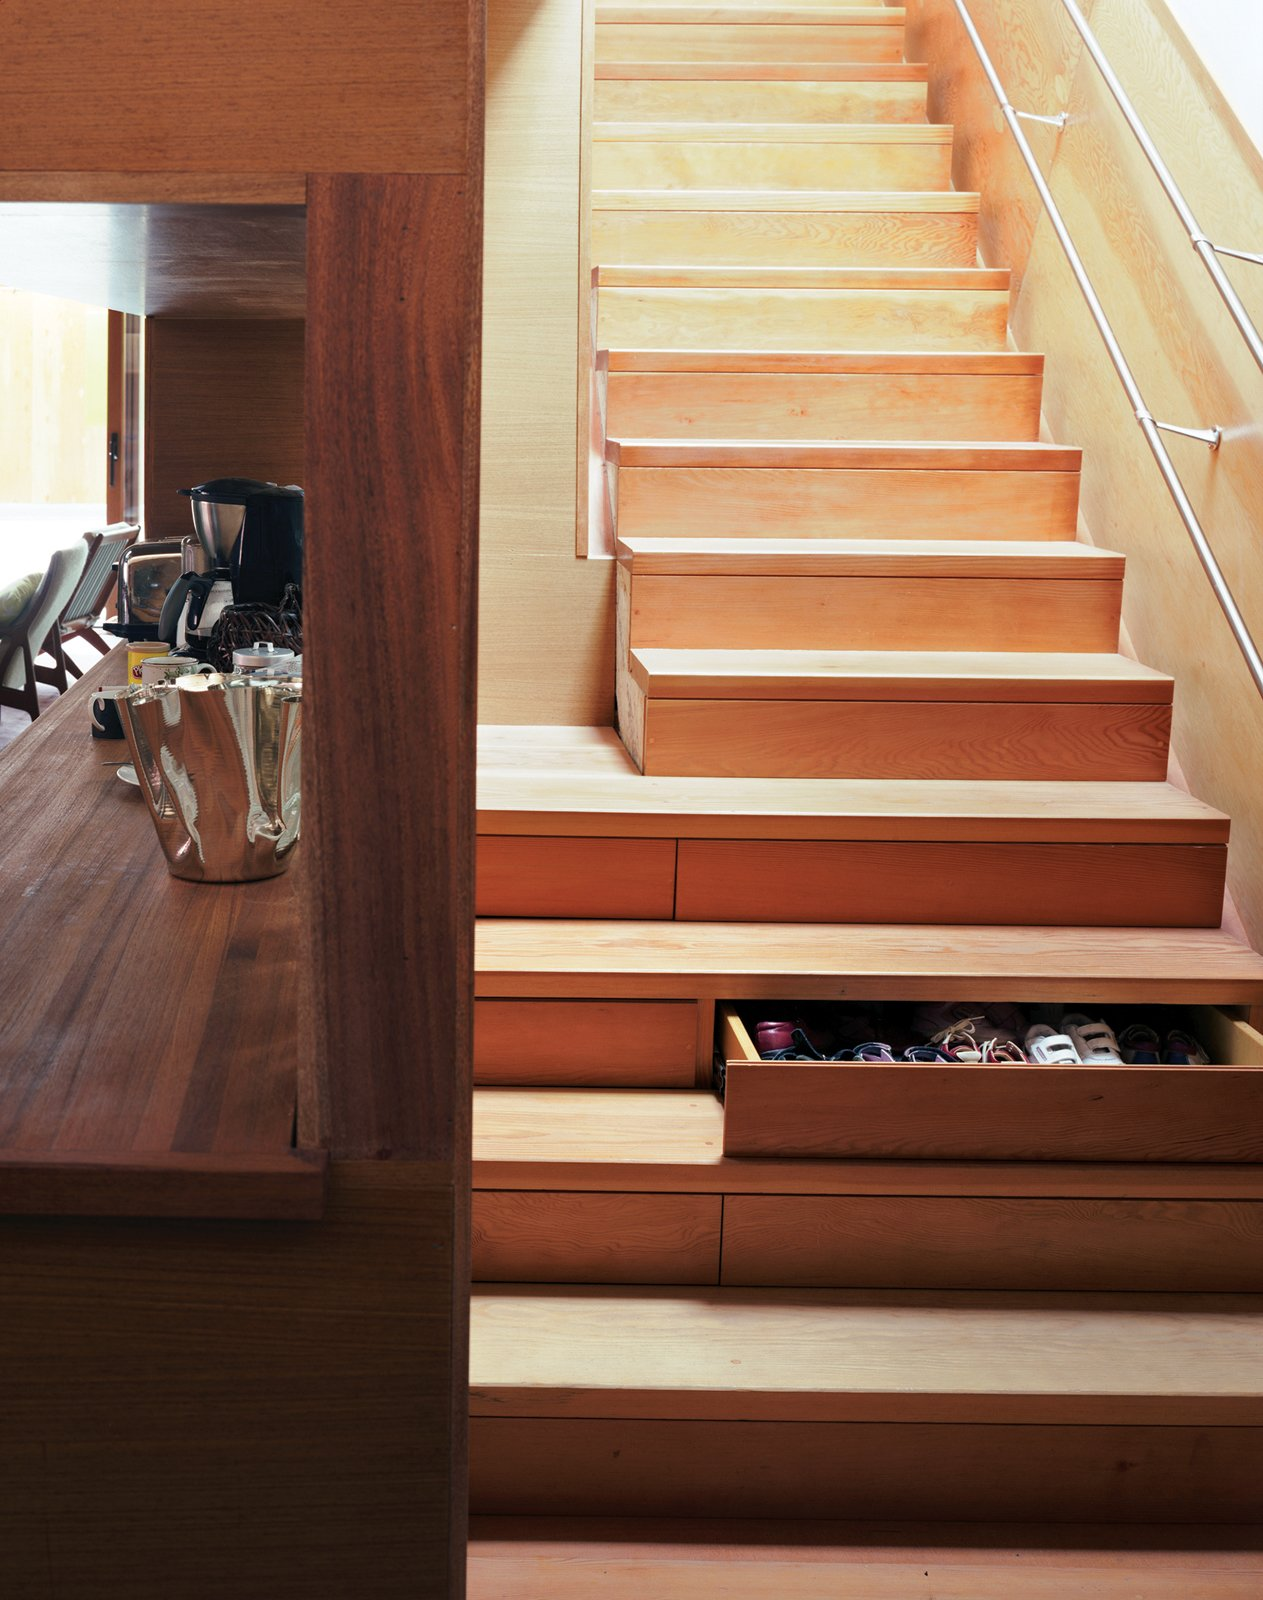 Tan built storage into every available corner of the house, including the stairs, each of which contains a drawer.